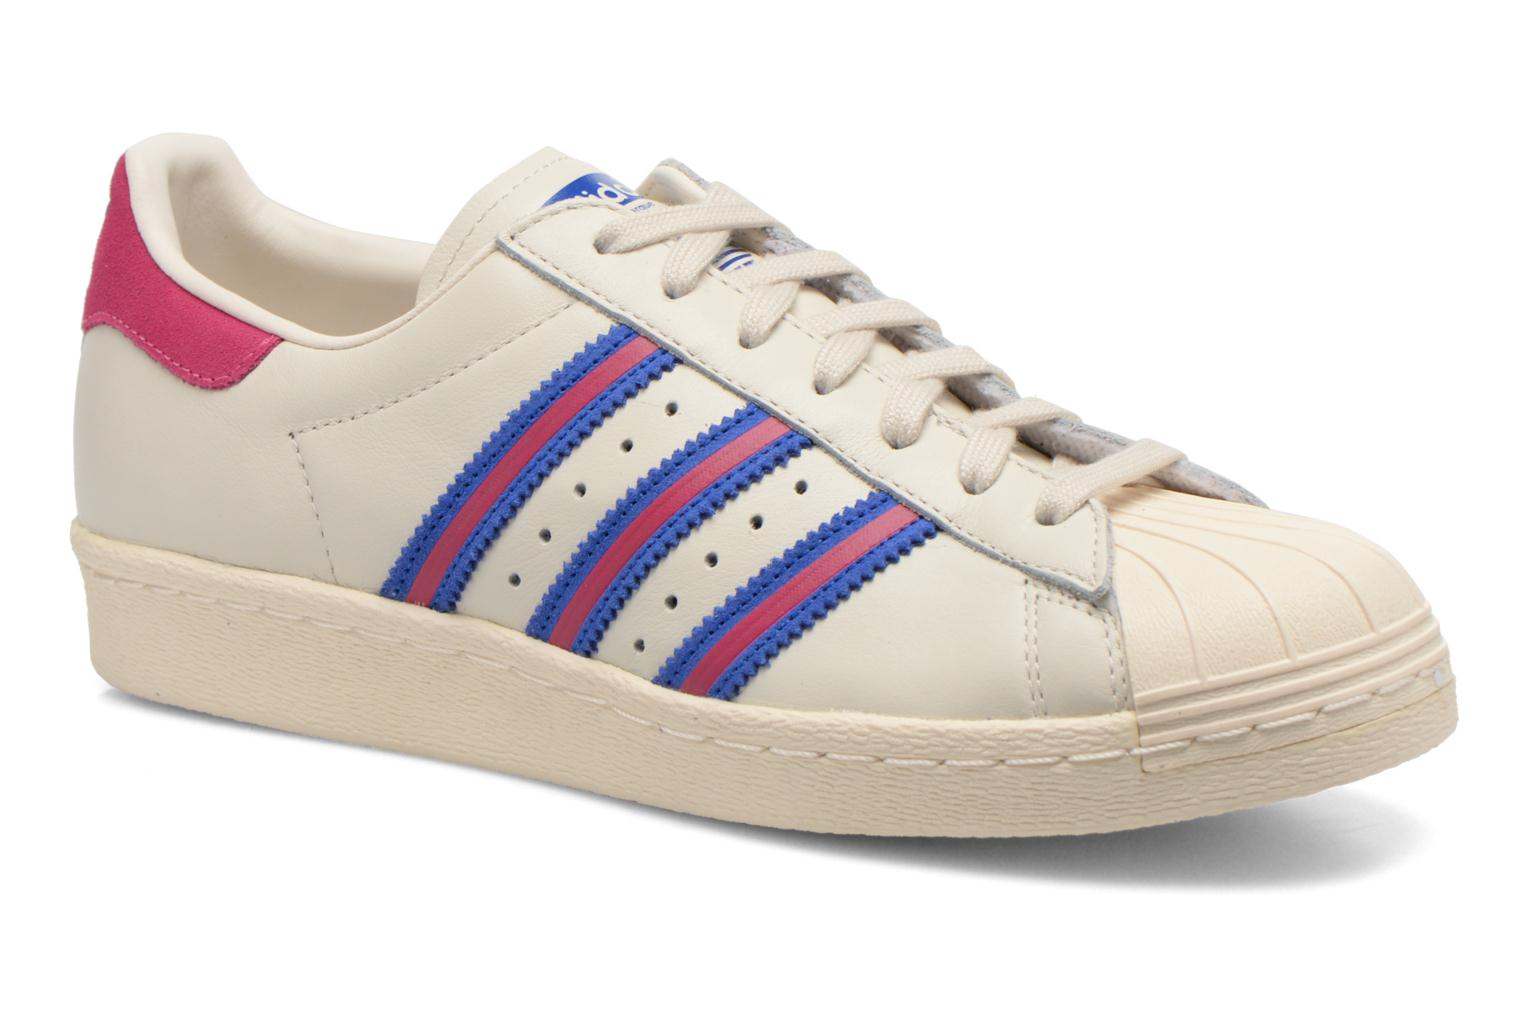 adidas original superstar 80s